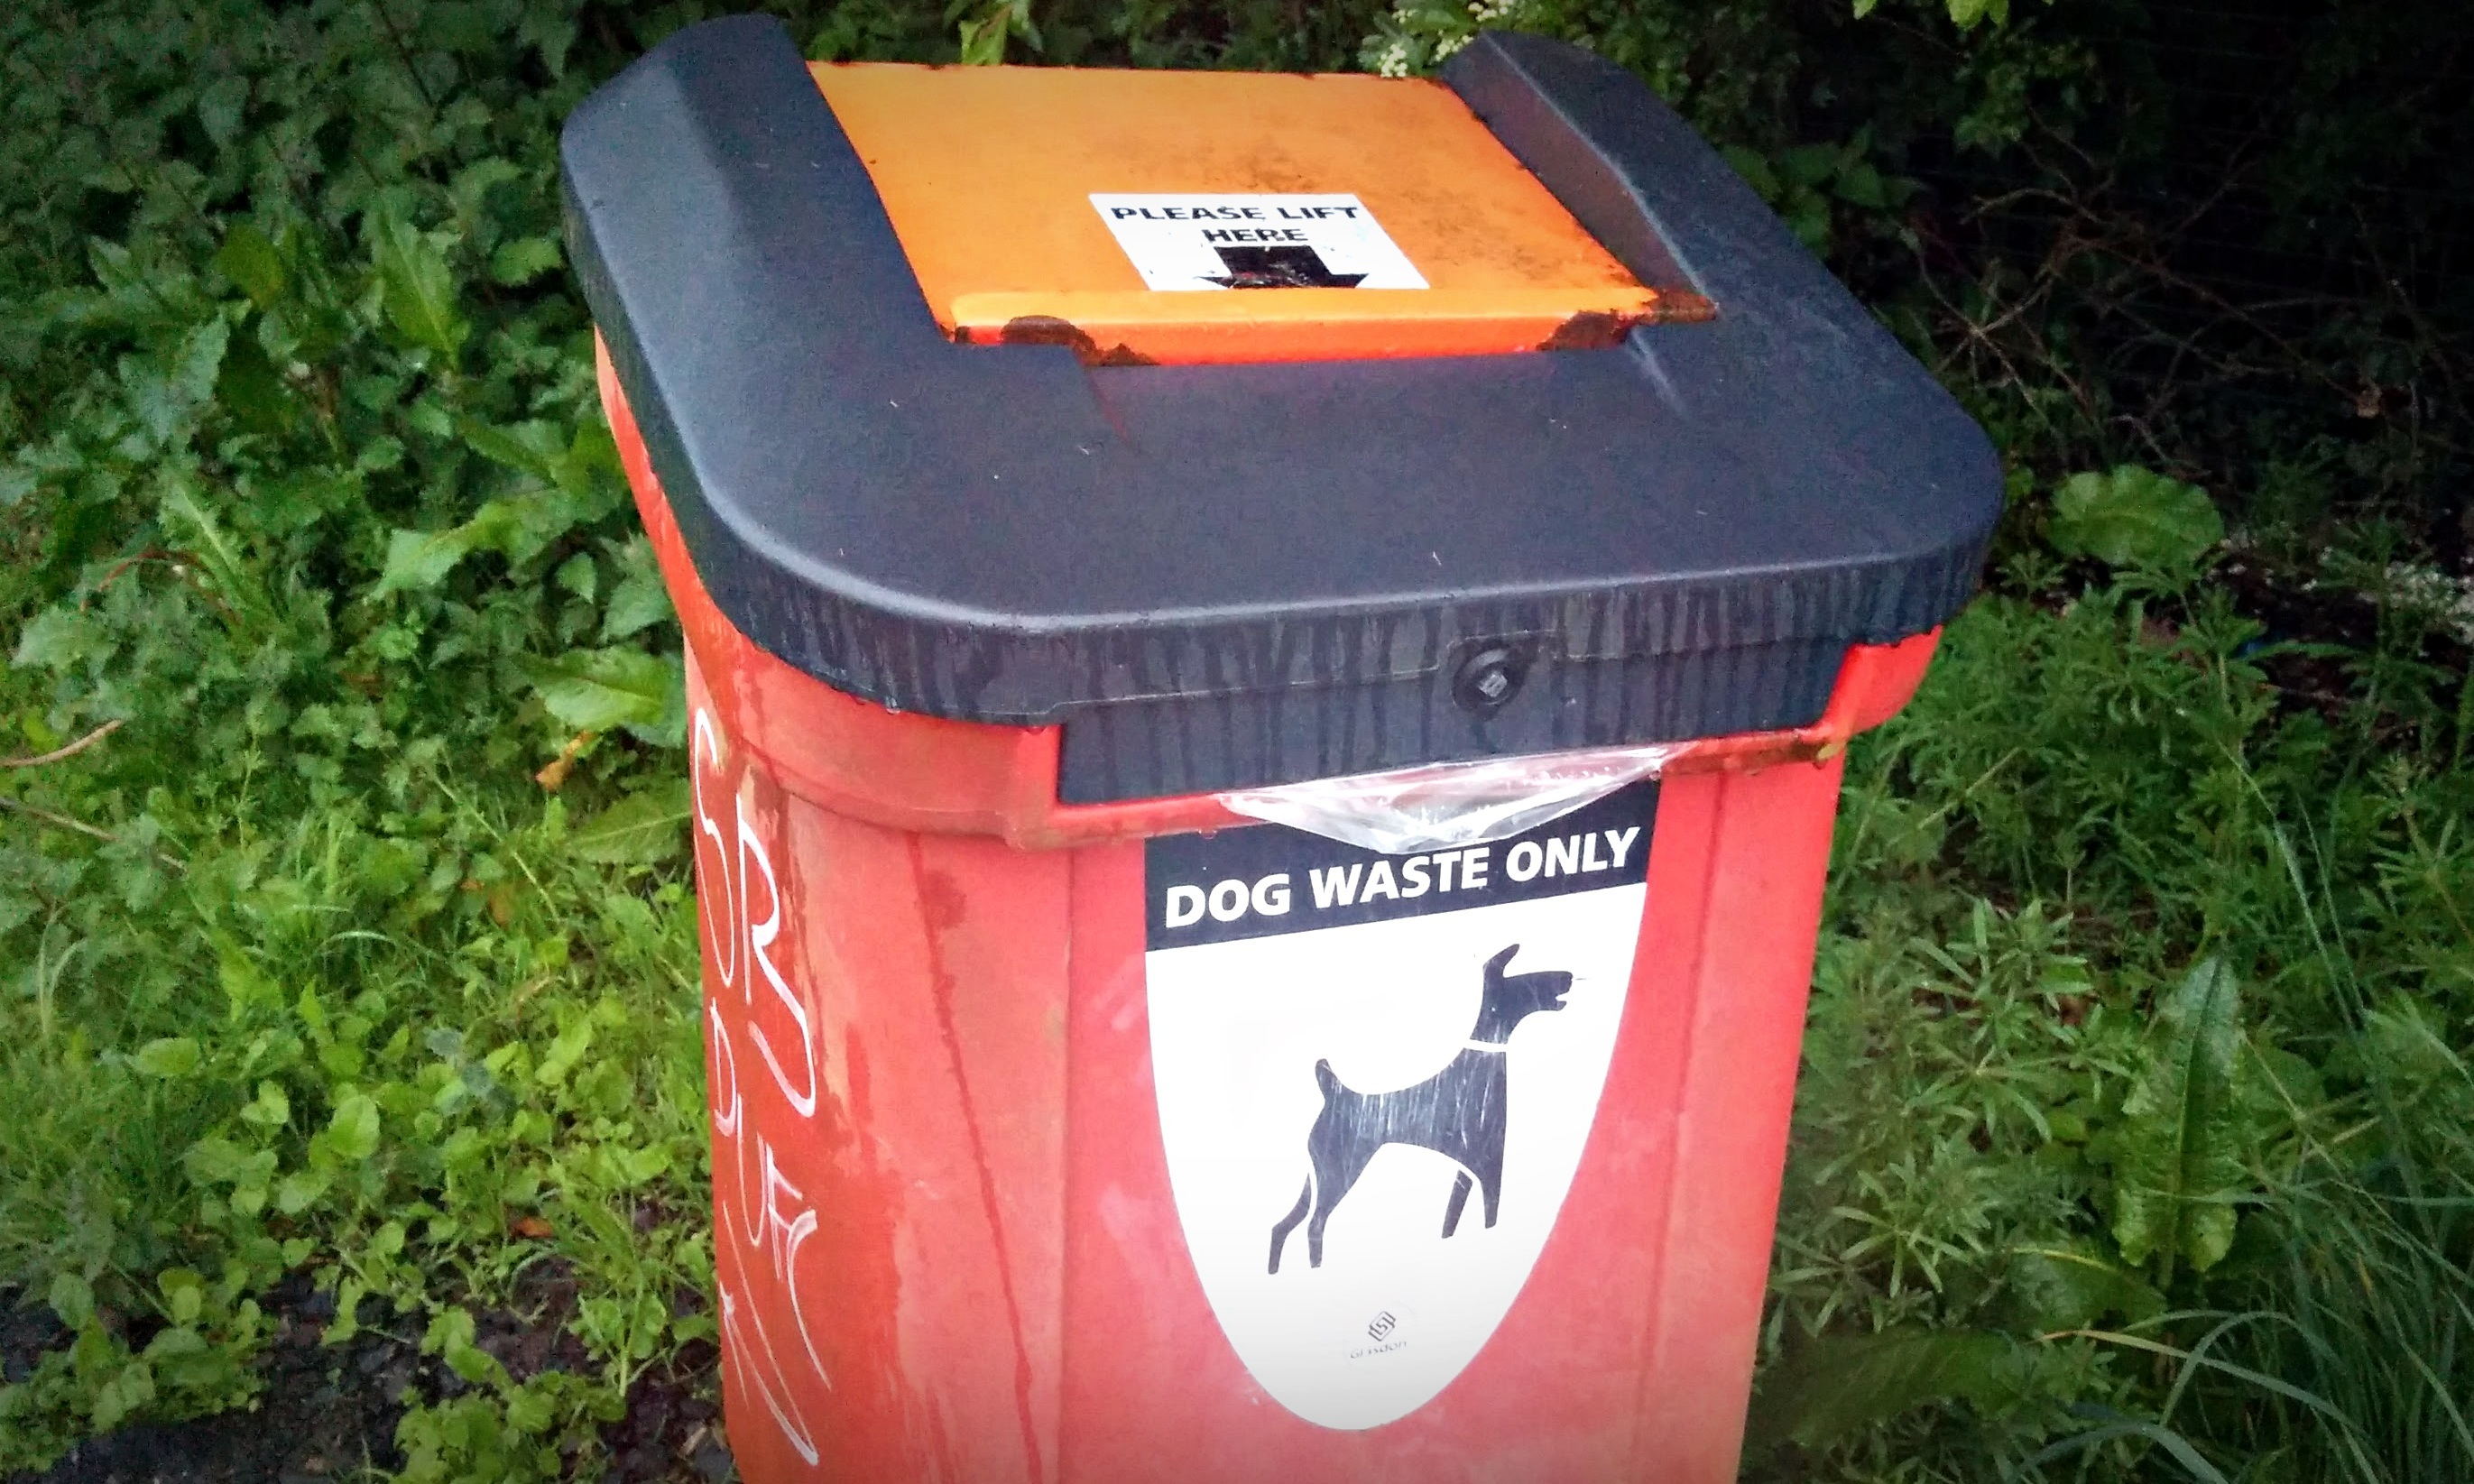 Community groups waging the war on litter have already uplifted over 300 dog faeces since January.